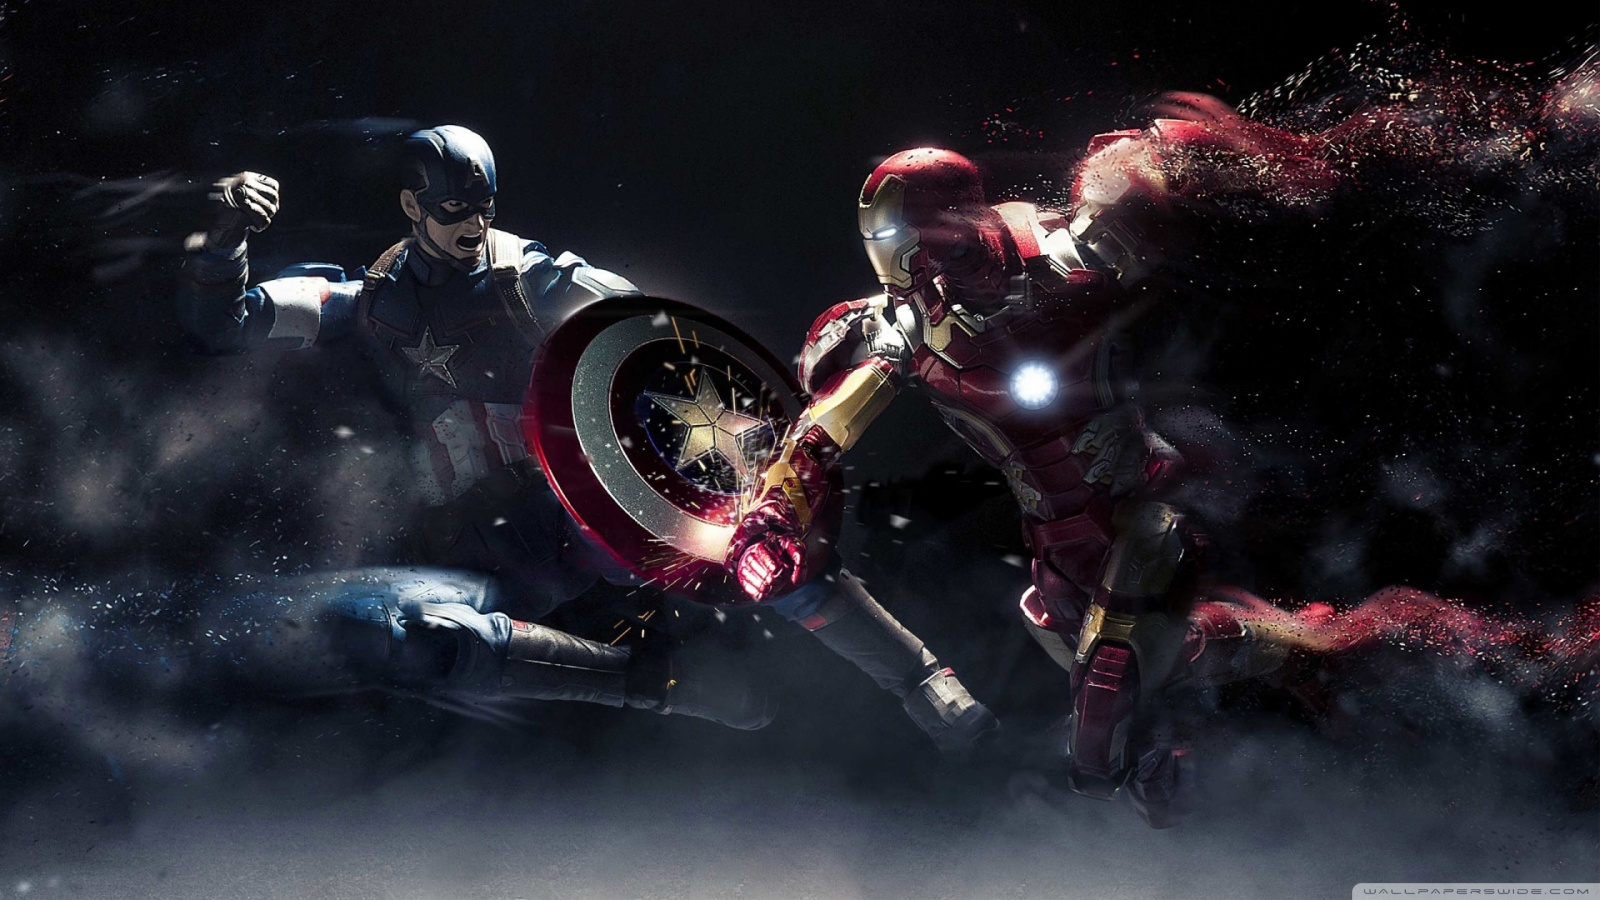 Captain America vs Iron Man 4K HD Desktop Wallpaper for 4K 1600x900